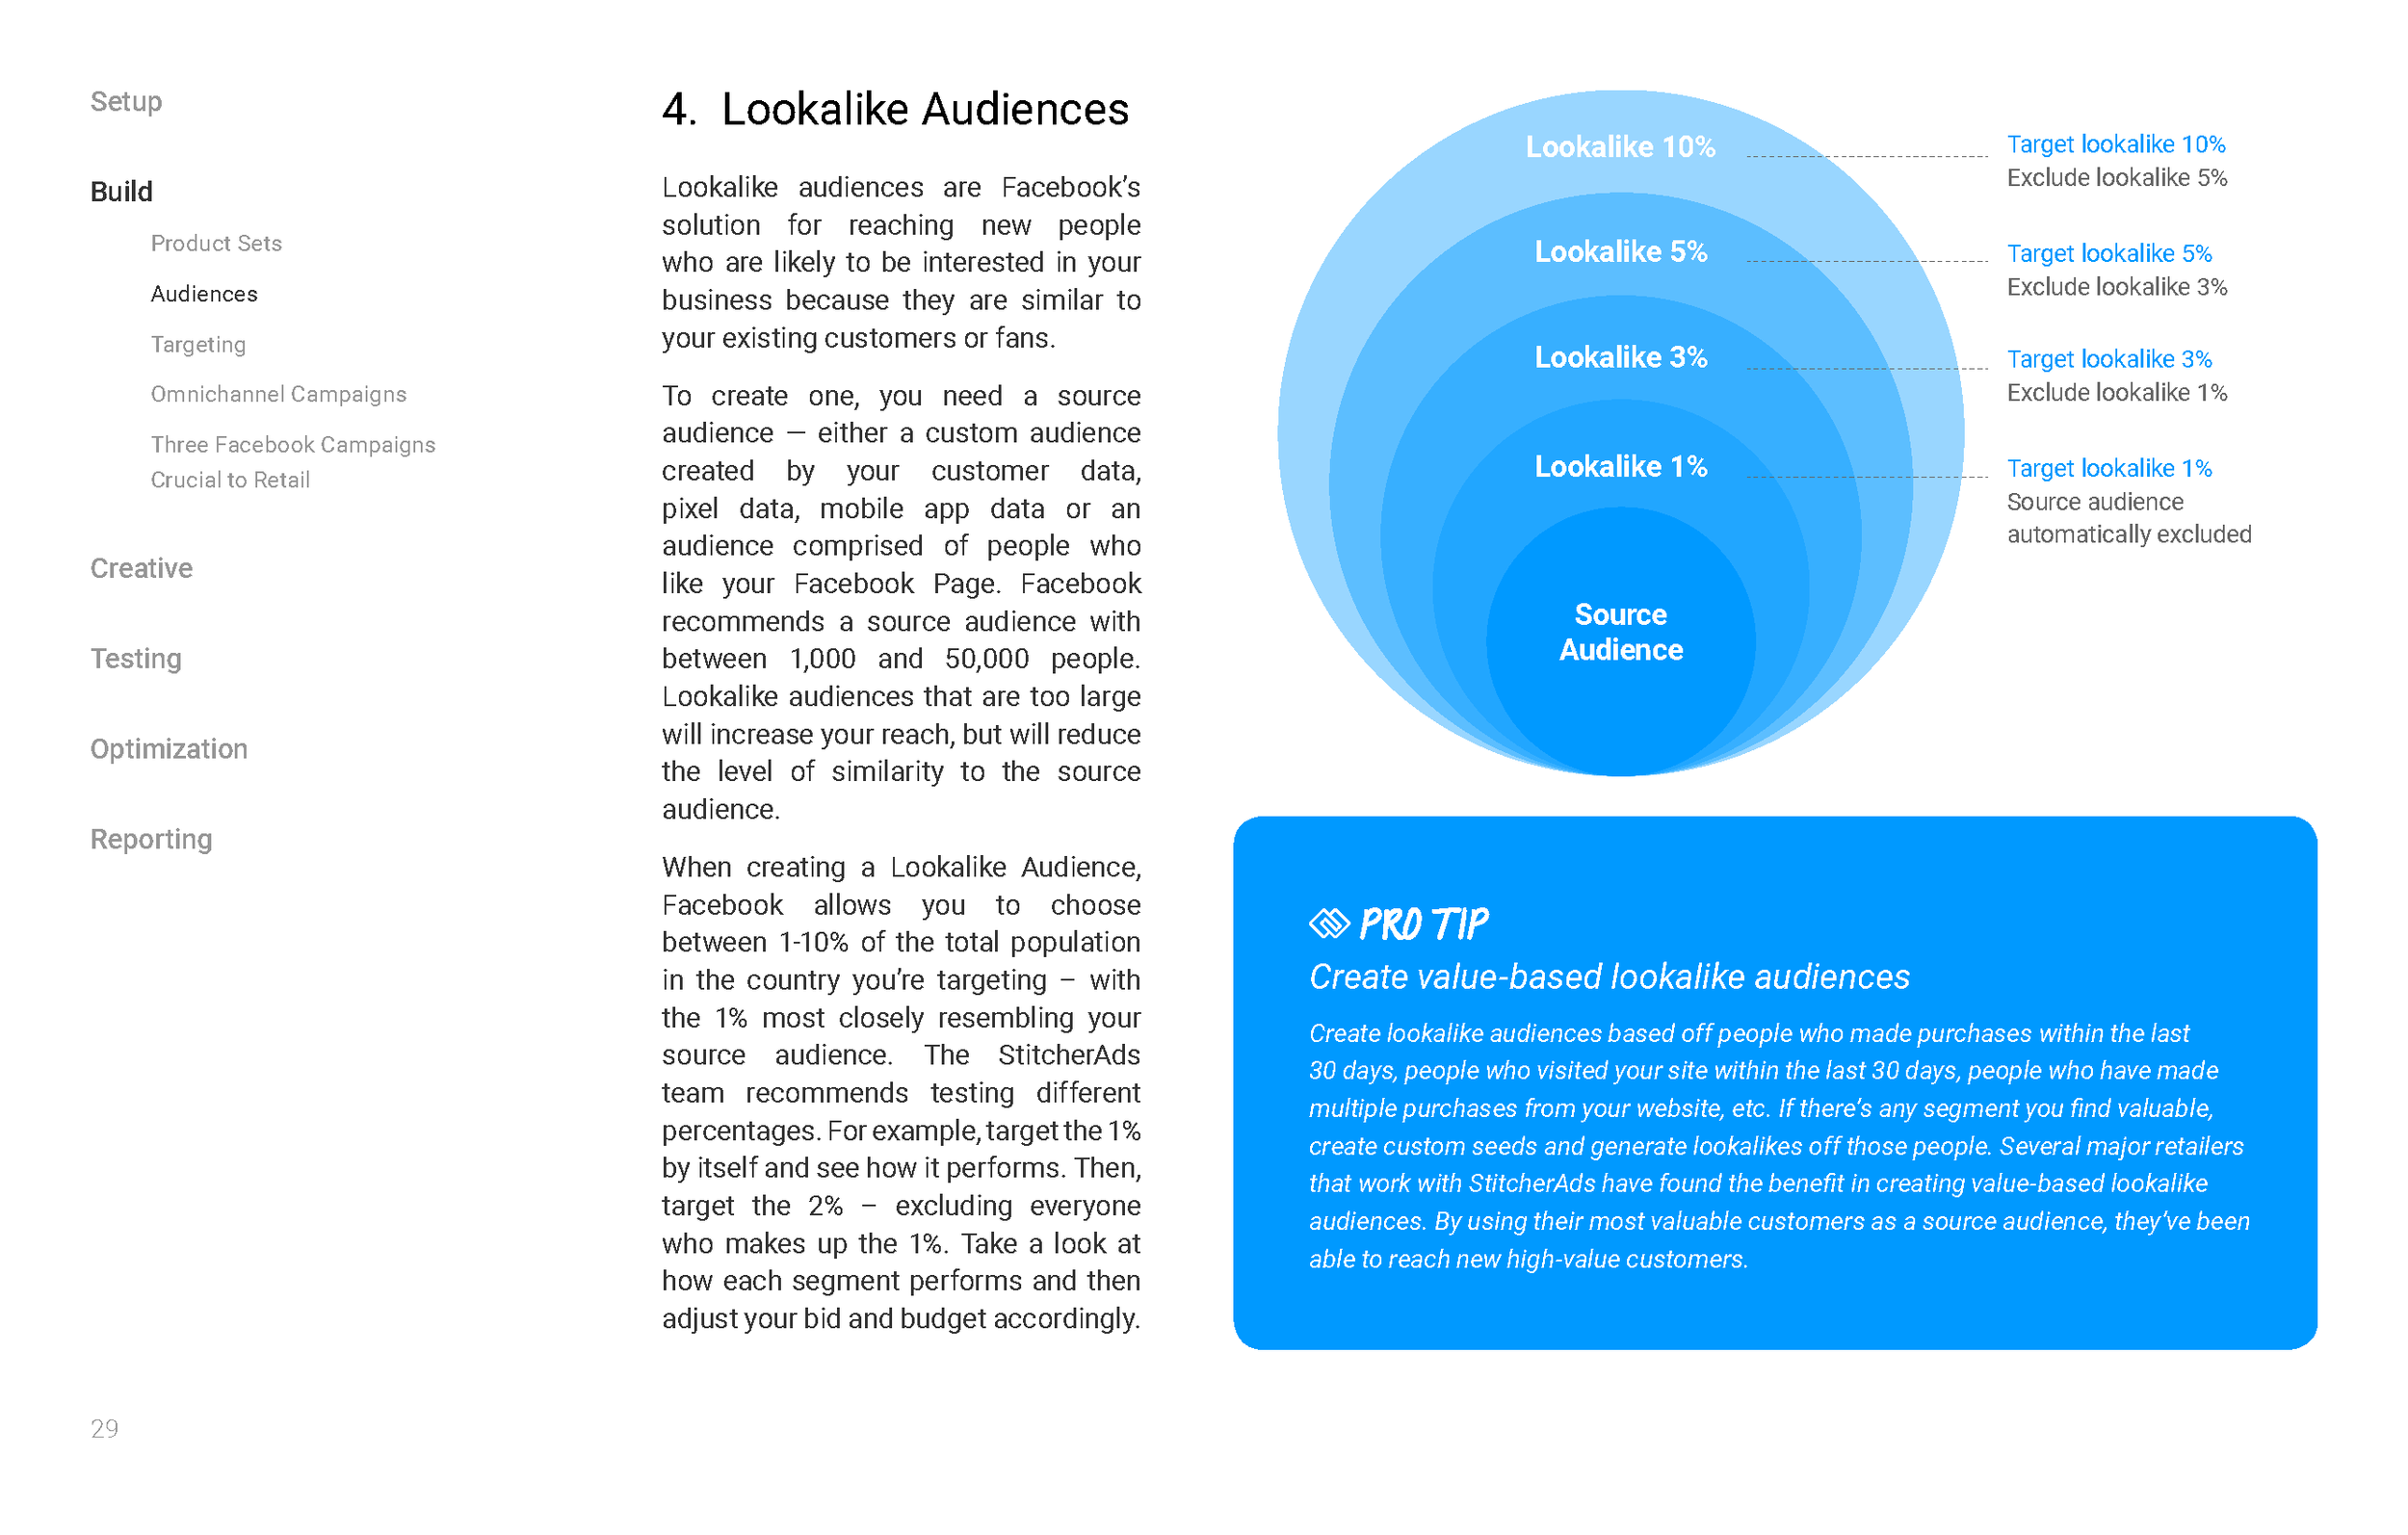 retail playbook _Page_029.png